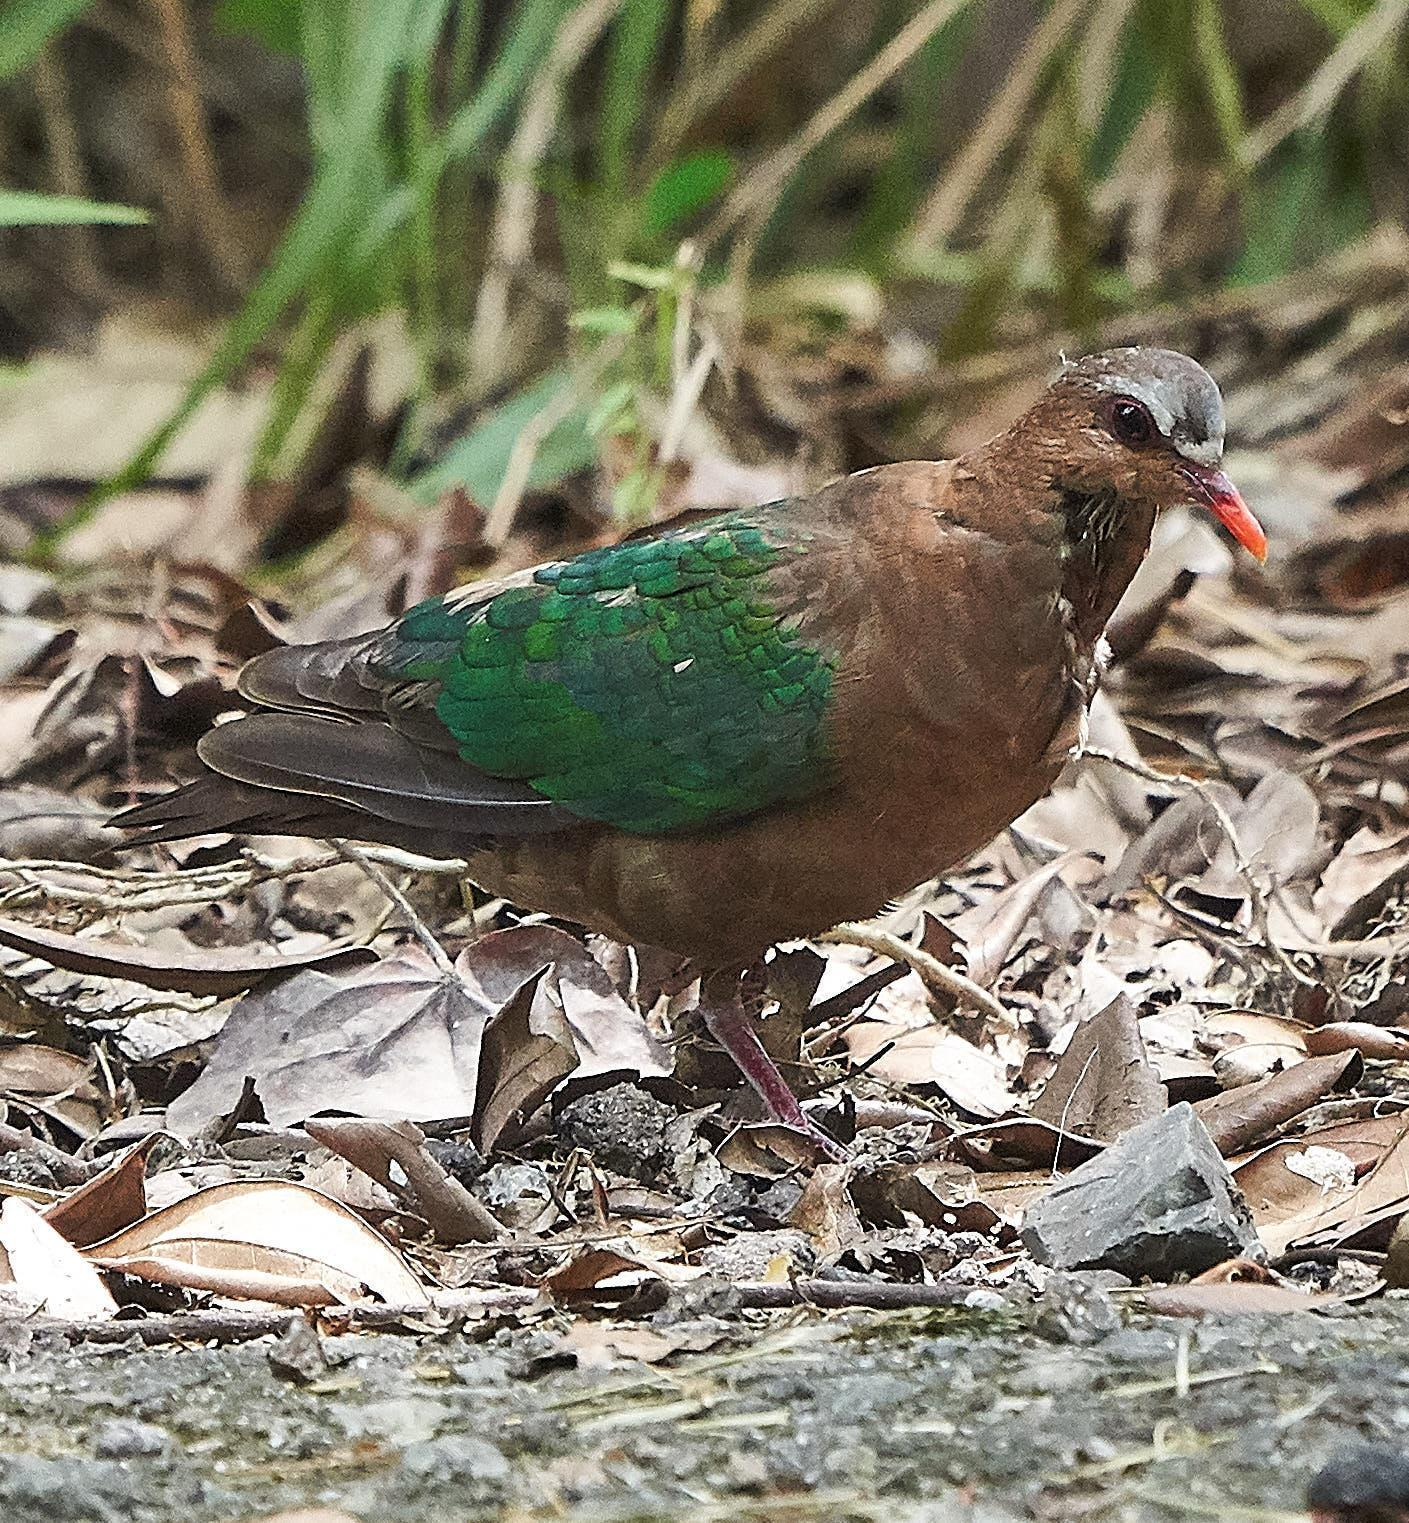 Asian Emerald Dove Photo by Steven Cheong